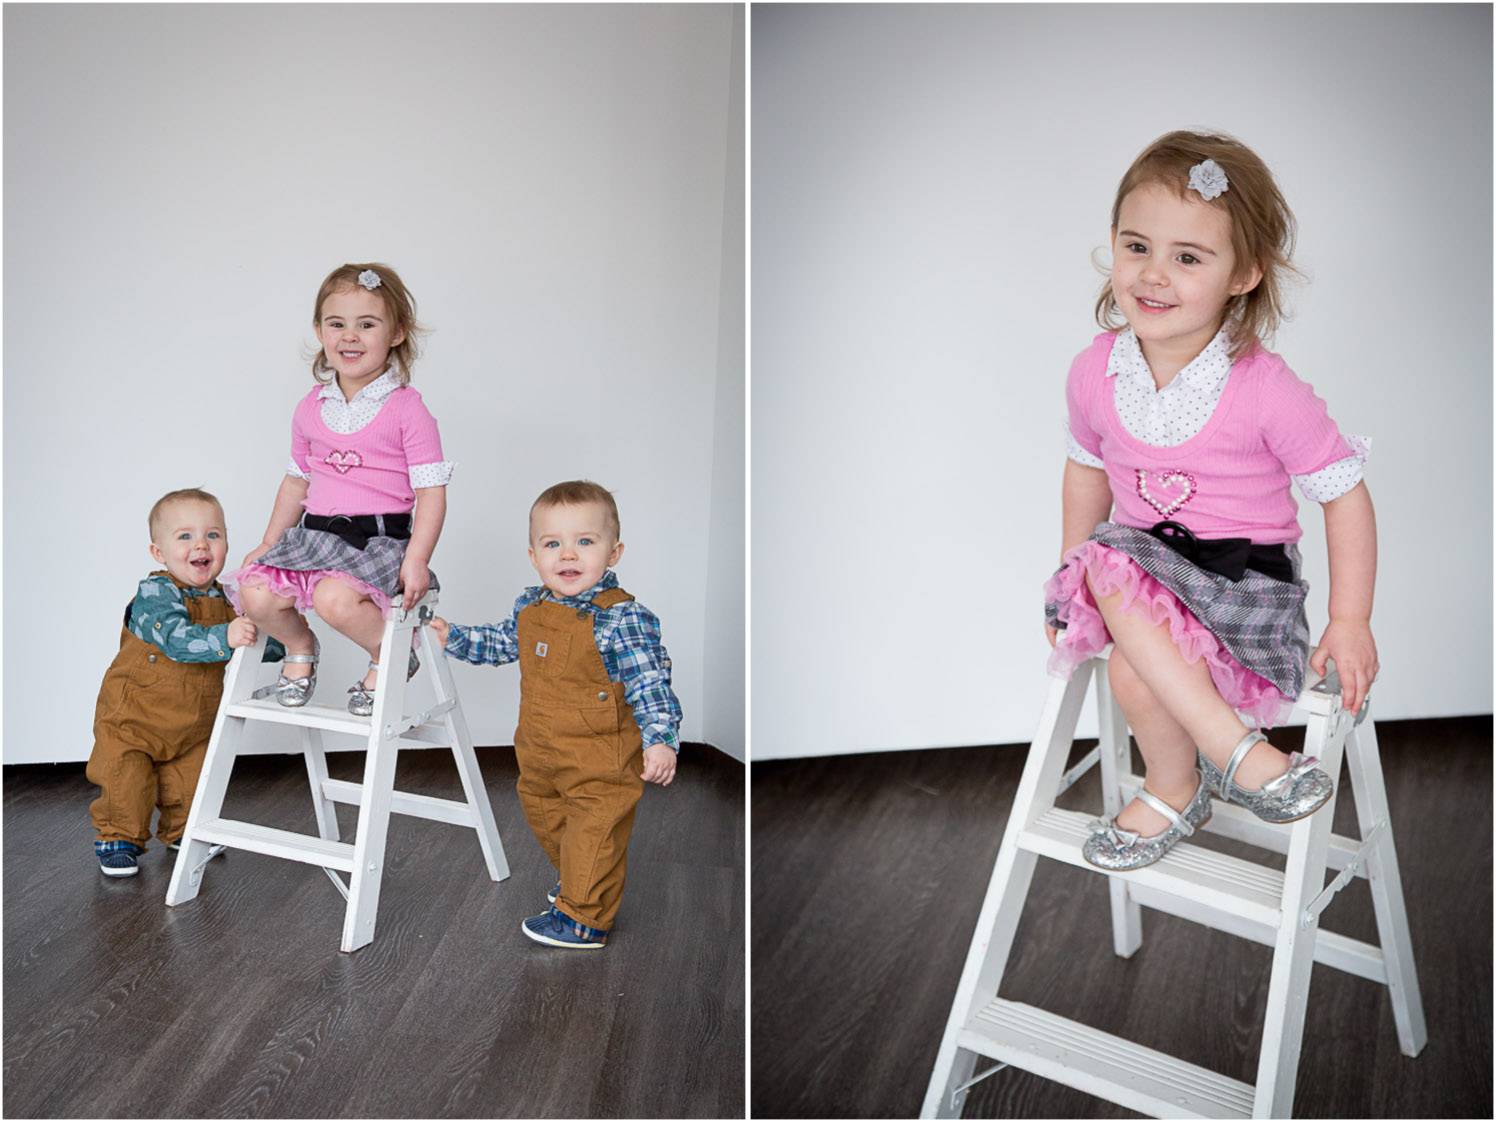 05-twin-boys-one-year-old-big-sister-family-of-three-photo-session-studio-gray-couch-carhardt-overalls-block-studios-minnesota-mahonen-photography.jpg